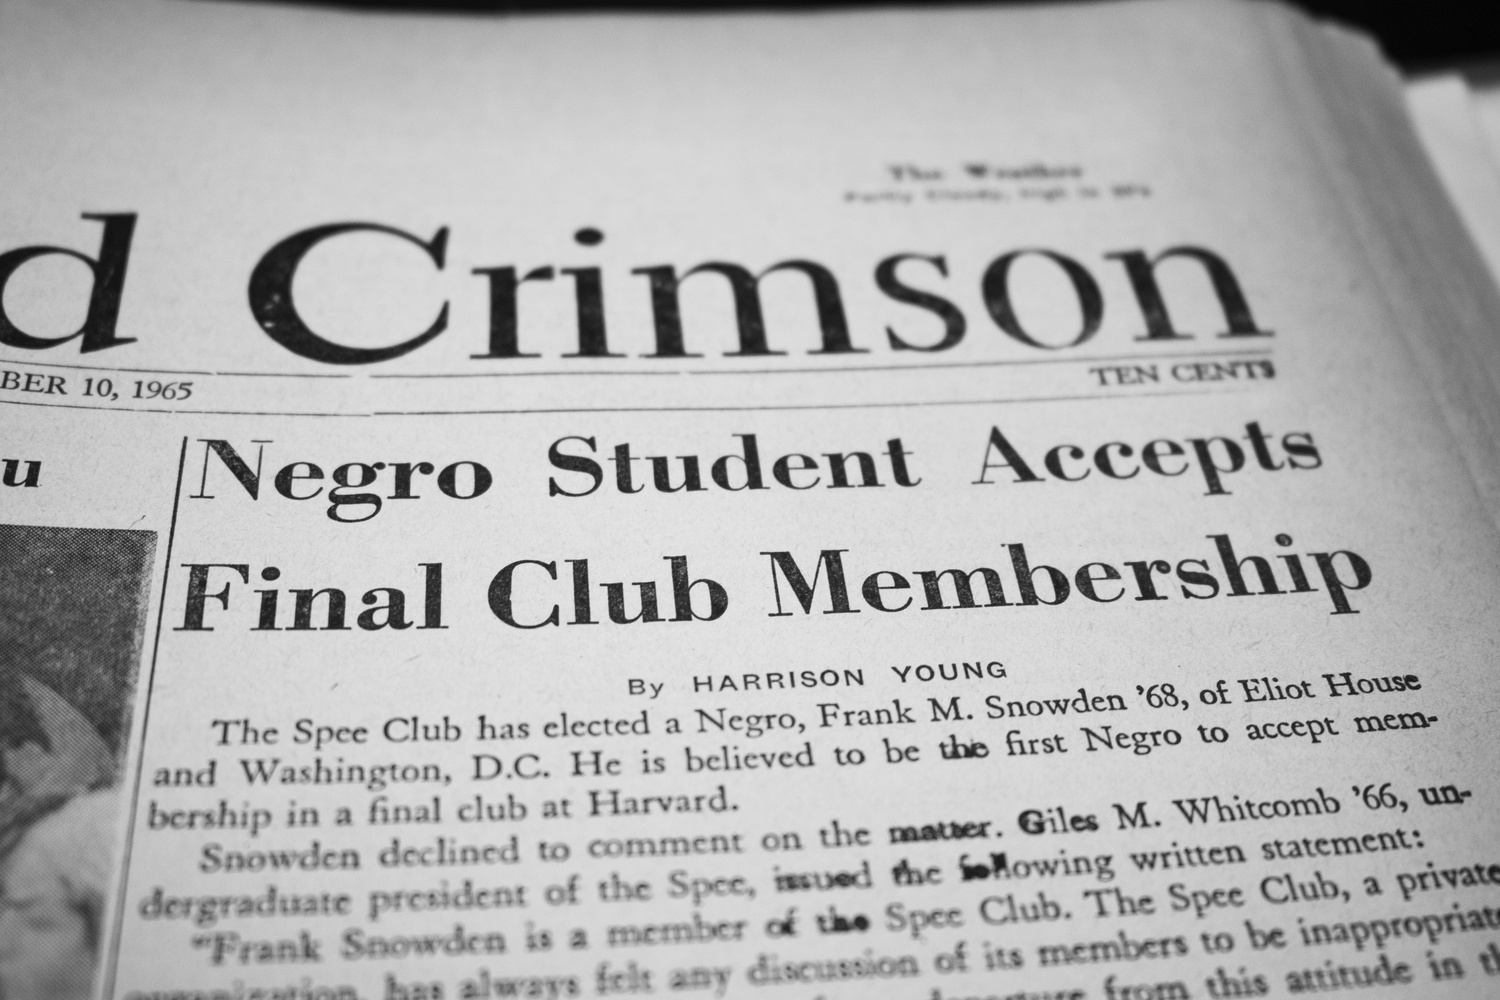 A headline from the December 10, 1965, issue when the Spee Club accepted its first black member.